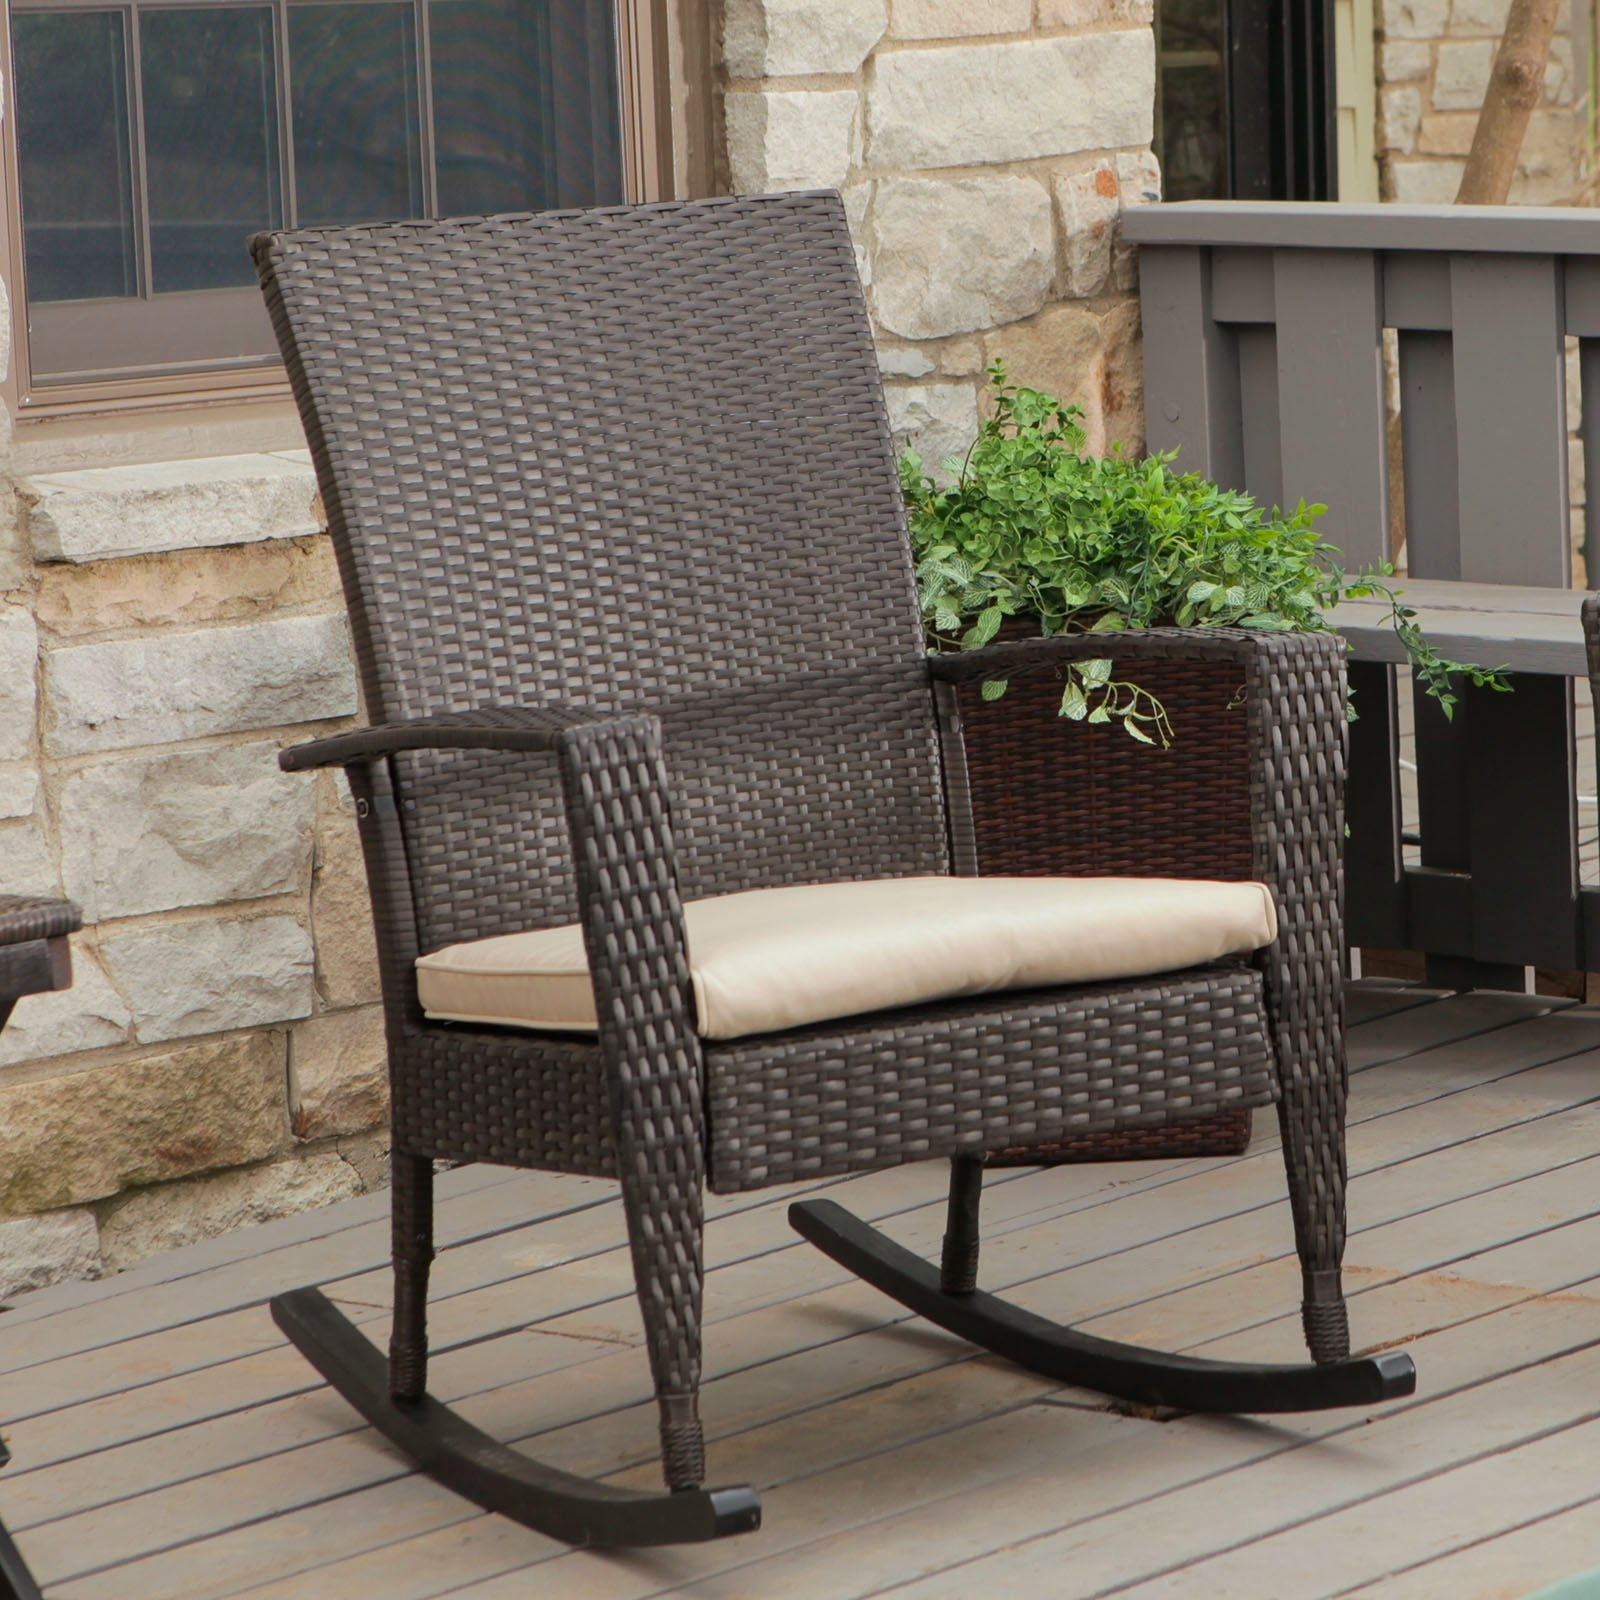 Outdoor Wicker Rocking Chairs Design — Wilson Home Ideas : How Oil Within Wicker Rocking Chairs For Outdoors (View 5 of 15)